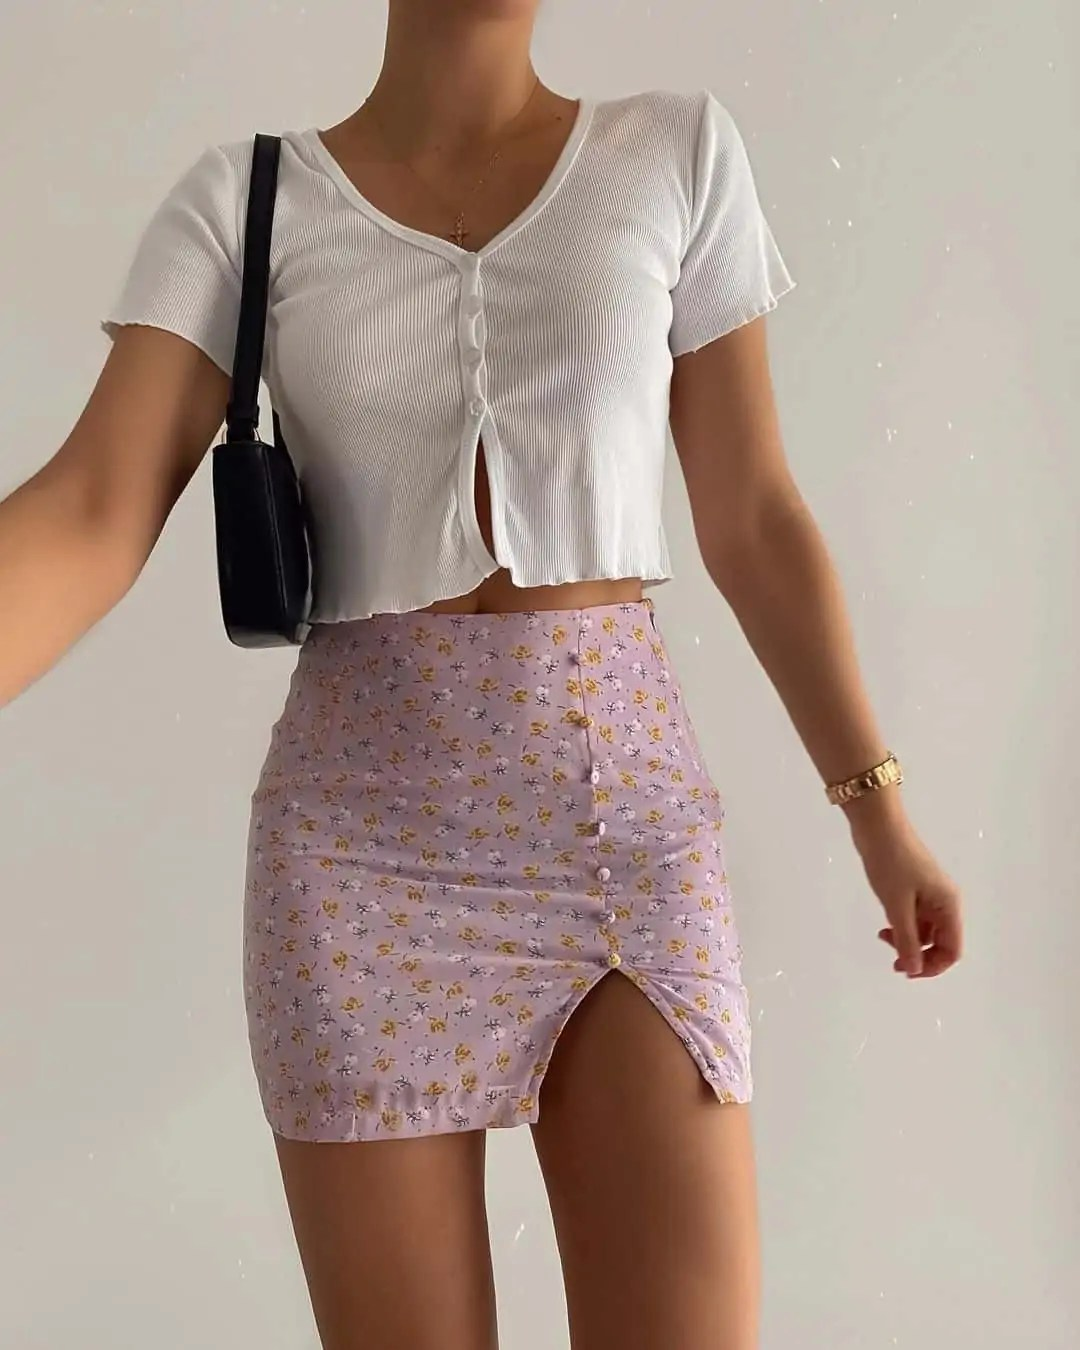 100+ Outfits to Inspire your next shopping haul 141